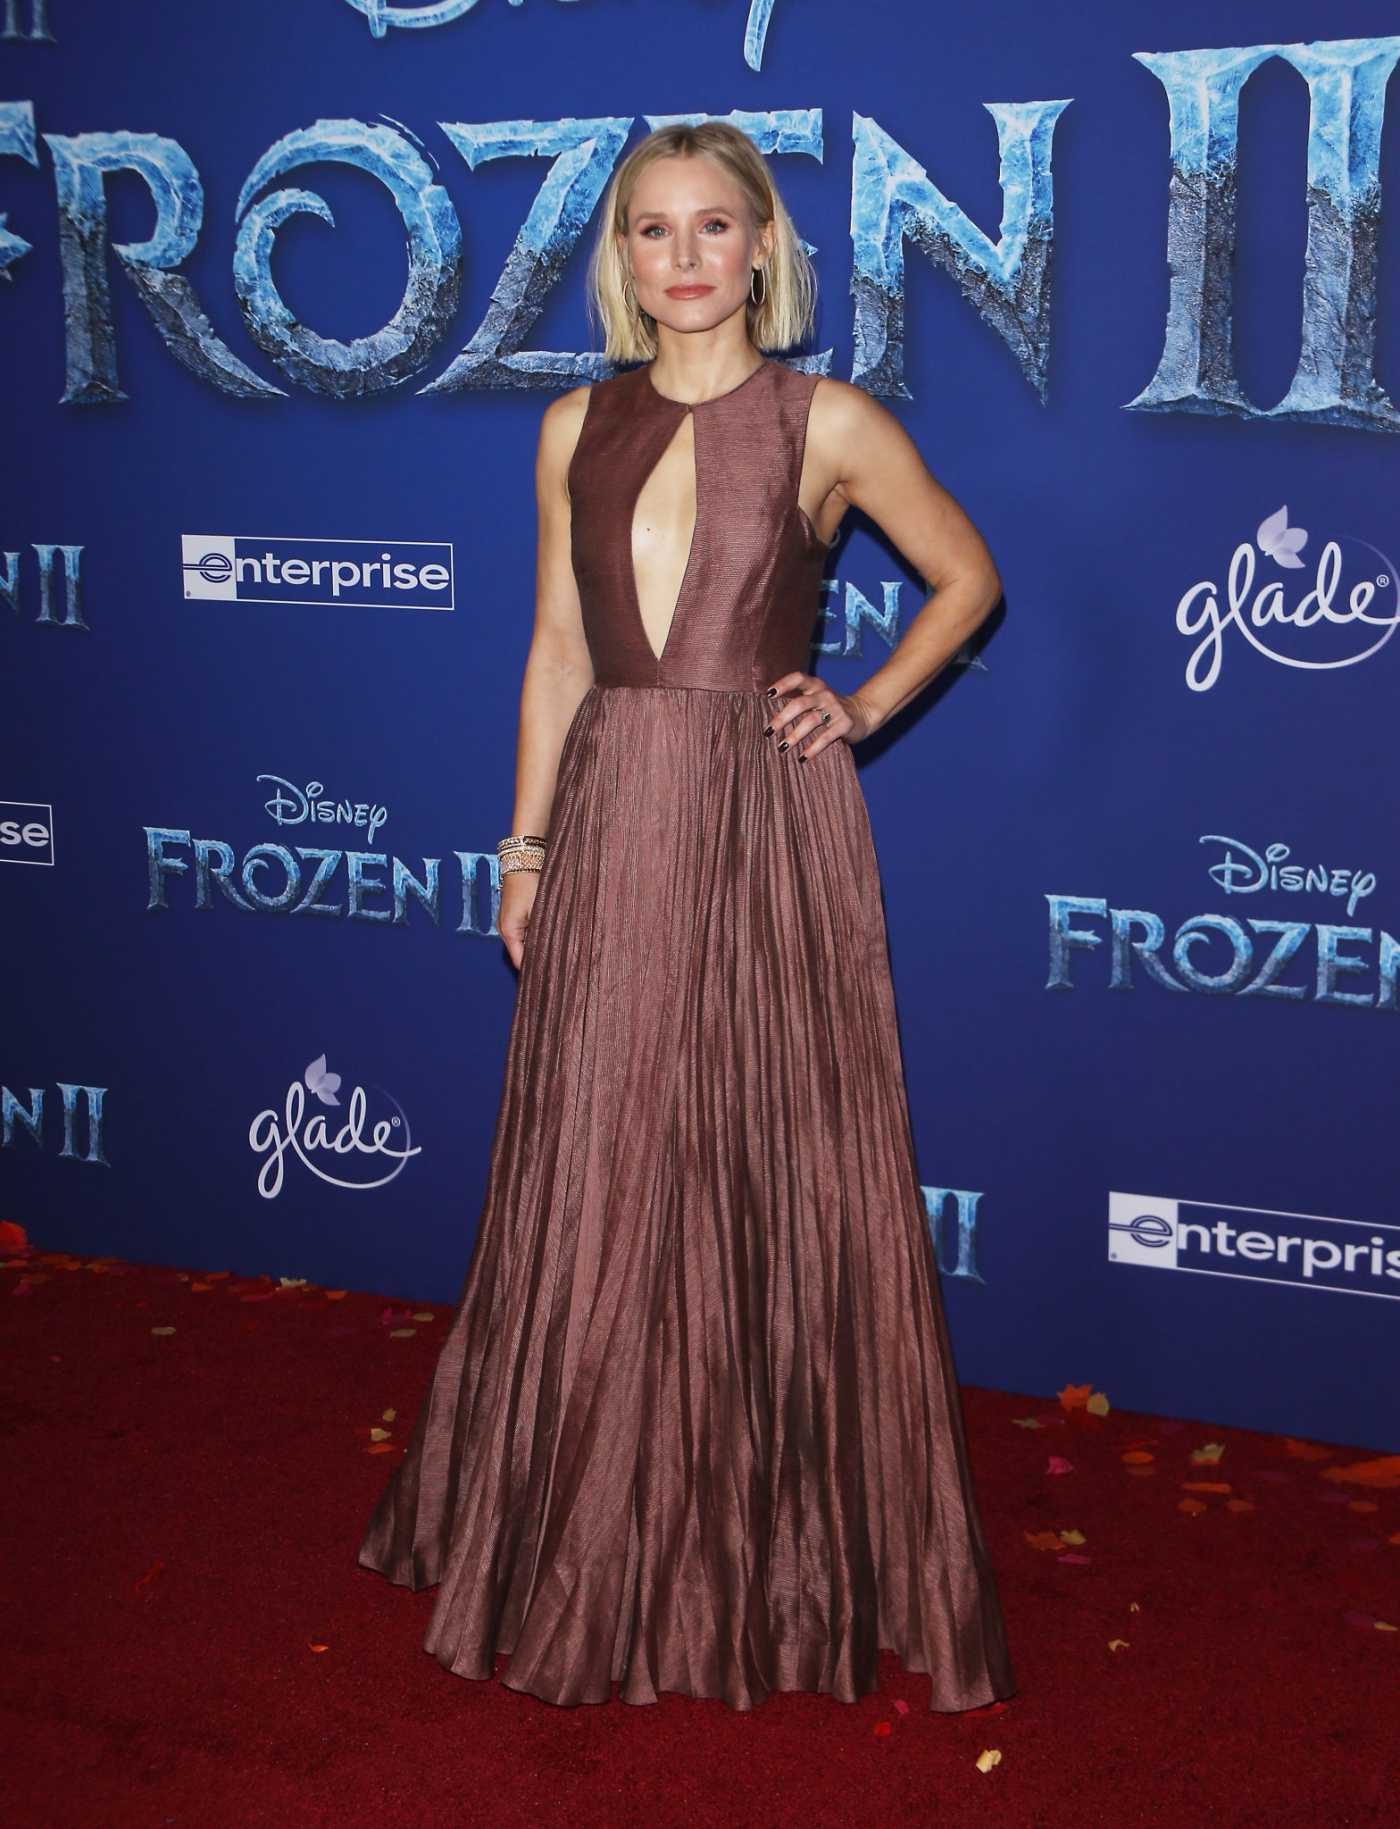 Kristen Bell Attends the Frozen 2 Premiere in Hollywood 11/07/2019